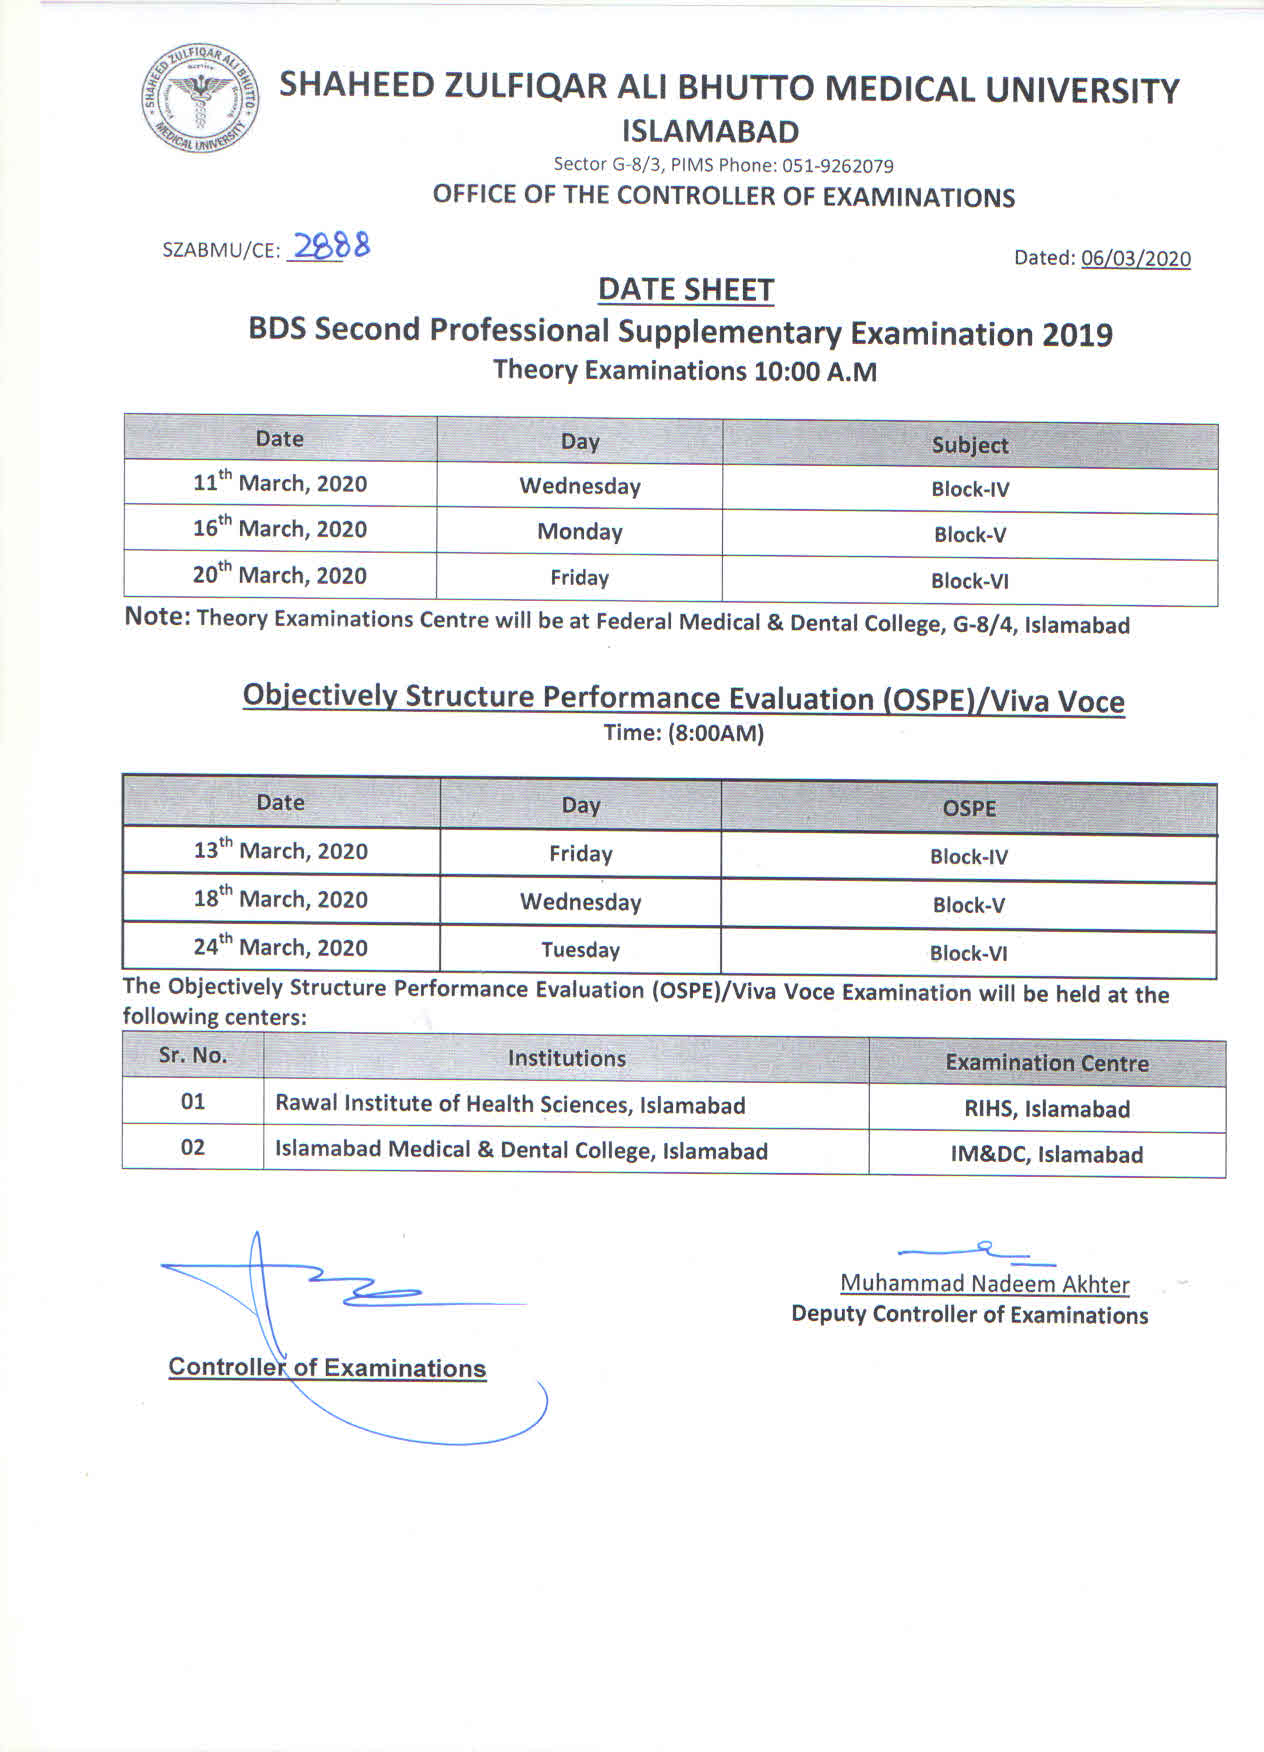 Date Sheet - BDS Supplementary Examination 2019